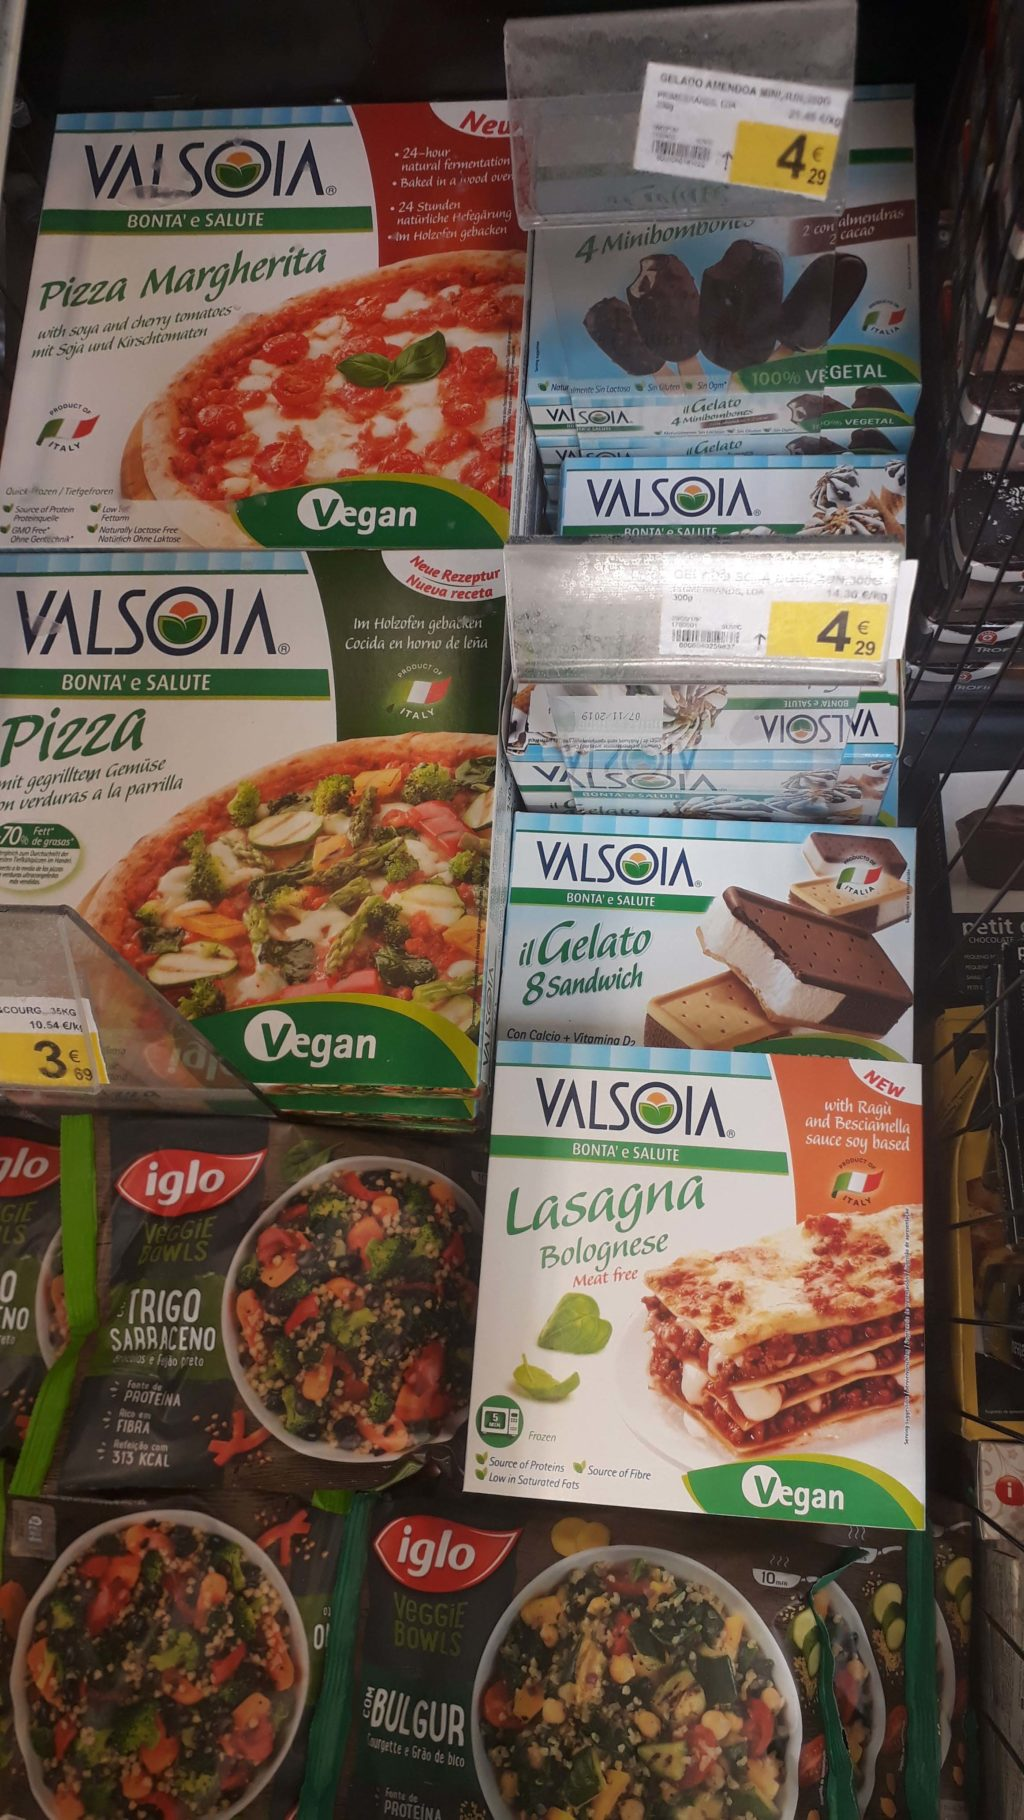 Vegan frozen pizzas, lasagna and various ice creams from Valsoia, Veggie Bowls from iglo